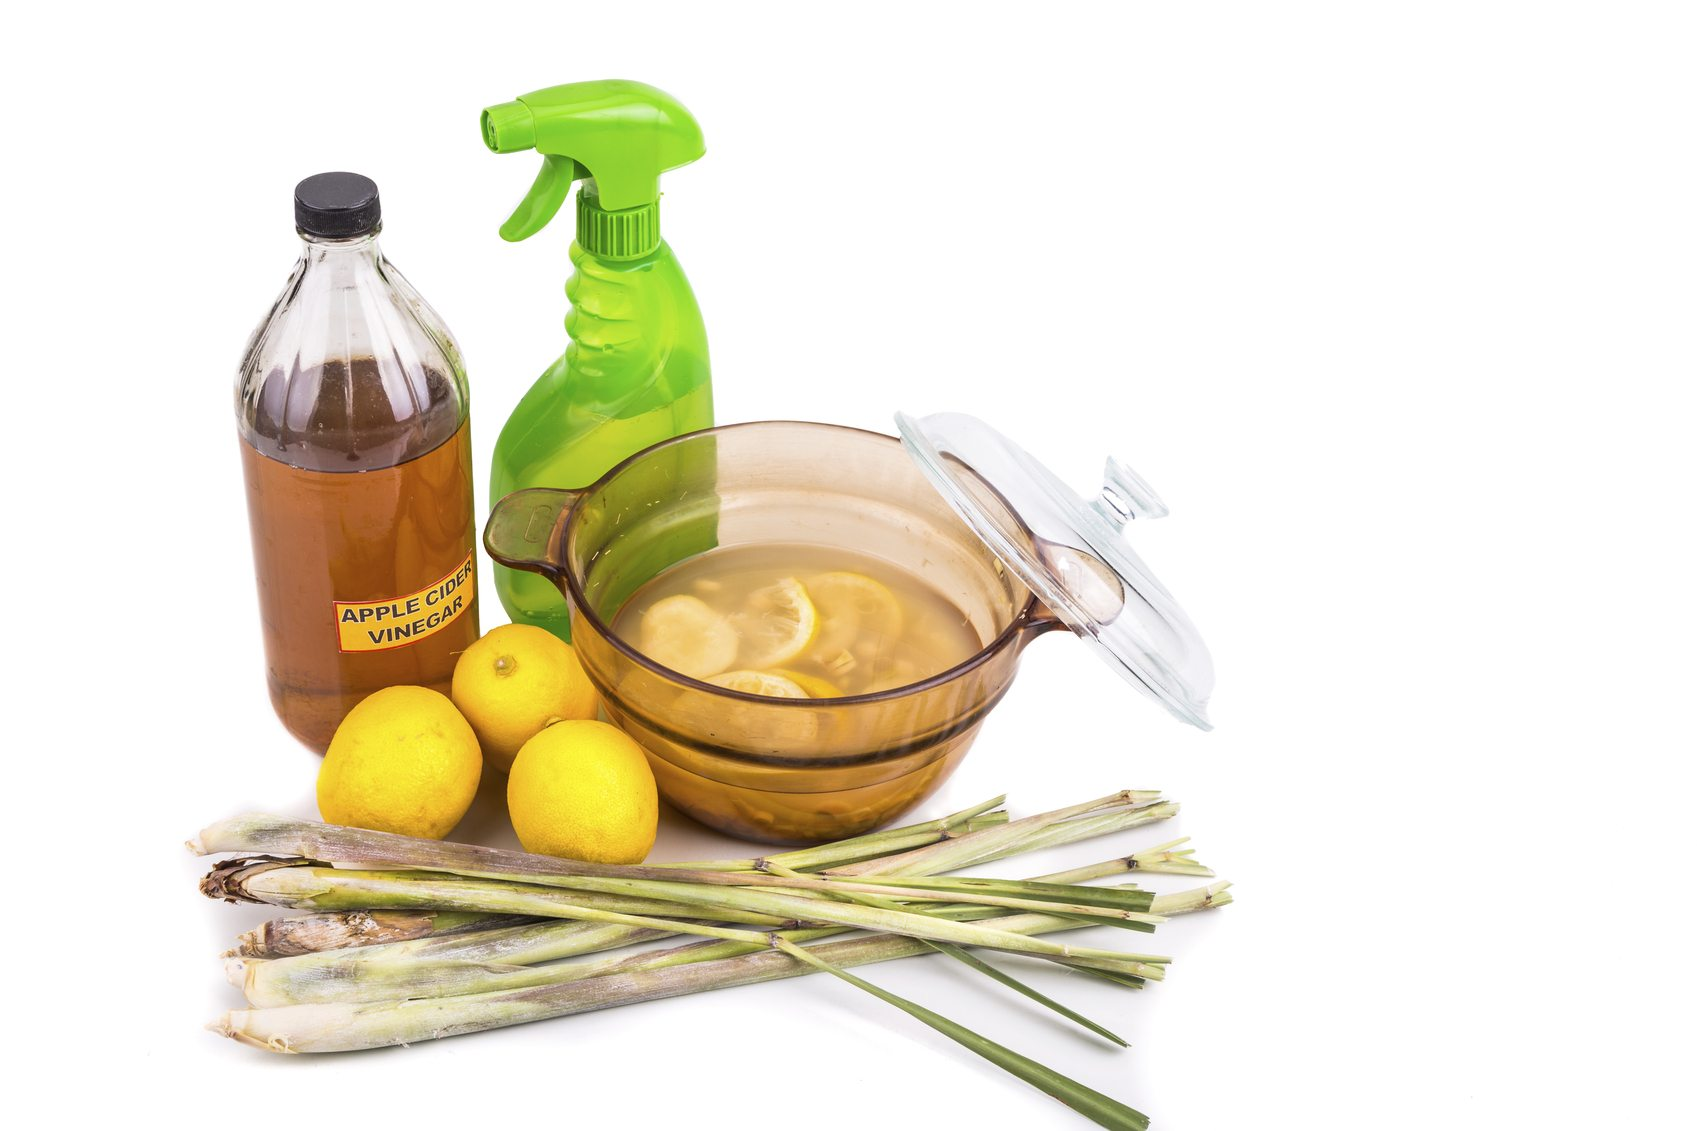 Eco Friendly Bug Spray Recipe Learn About Environmentally Friendly Bug Sprays